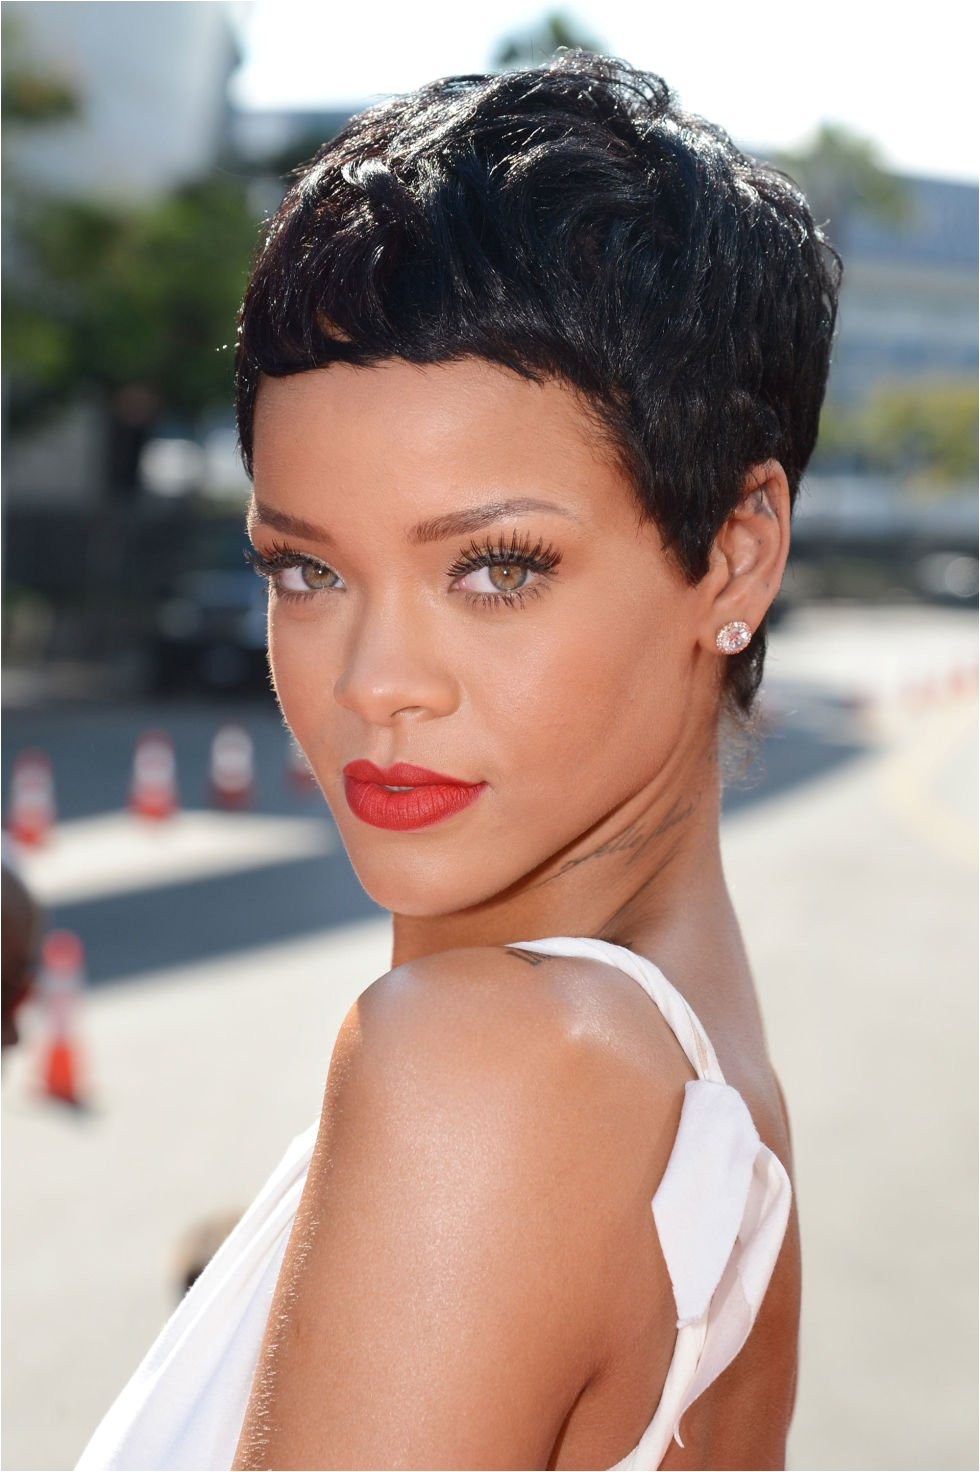 Images Of Short Cut Hairstyles Chic and Beautiful Short Hairstyles for Women Over 50